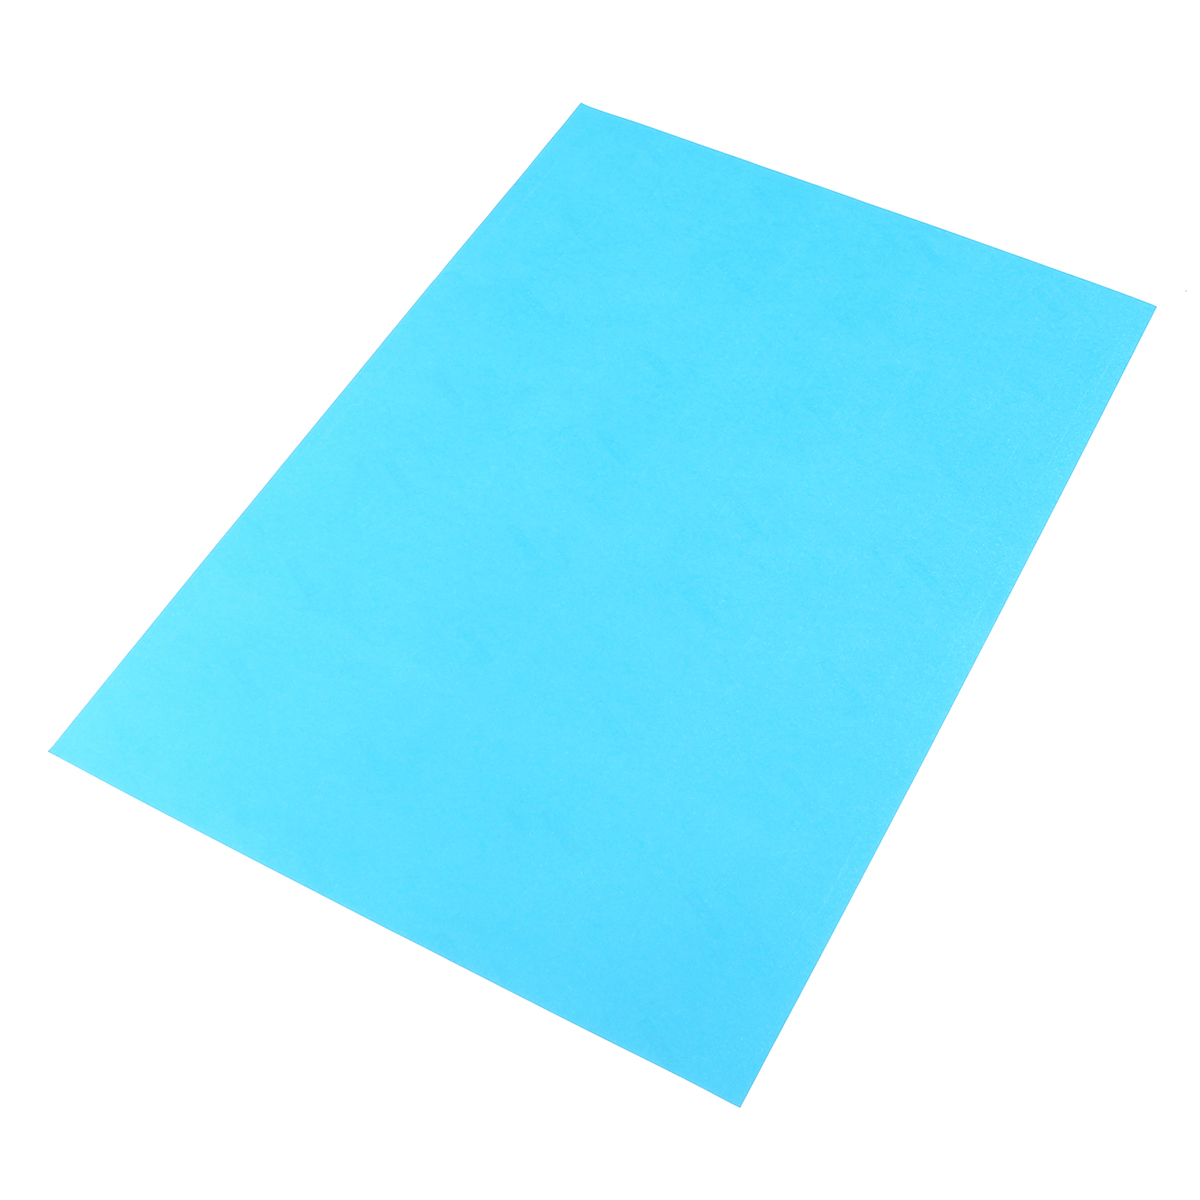 300pcs 10 Sheets A4 Self-adhesive Cable Labels Identification Markers Tags Stick